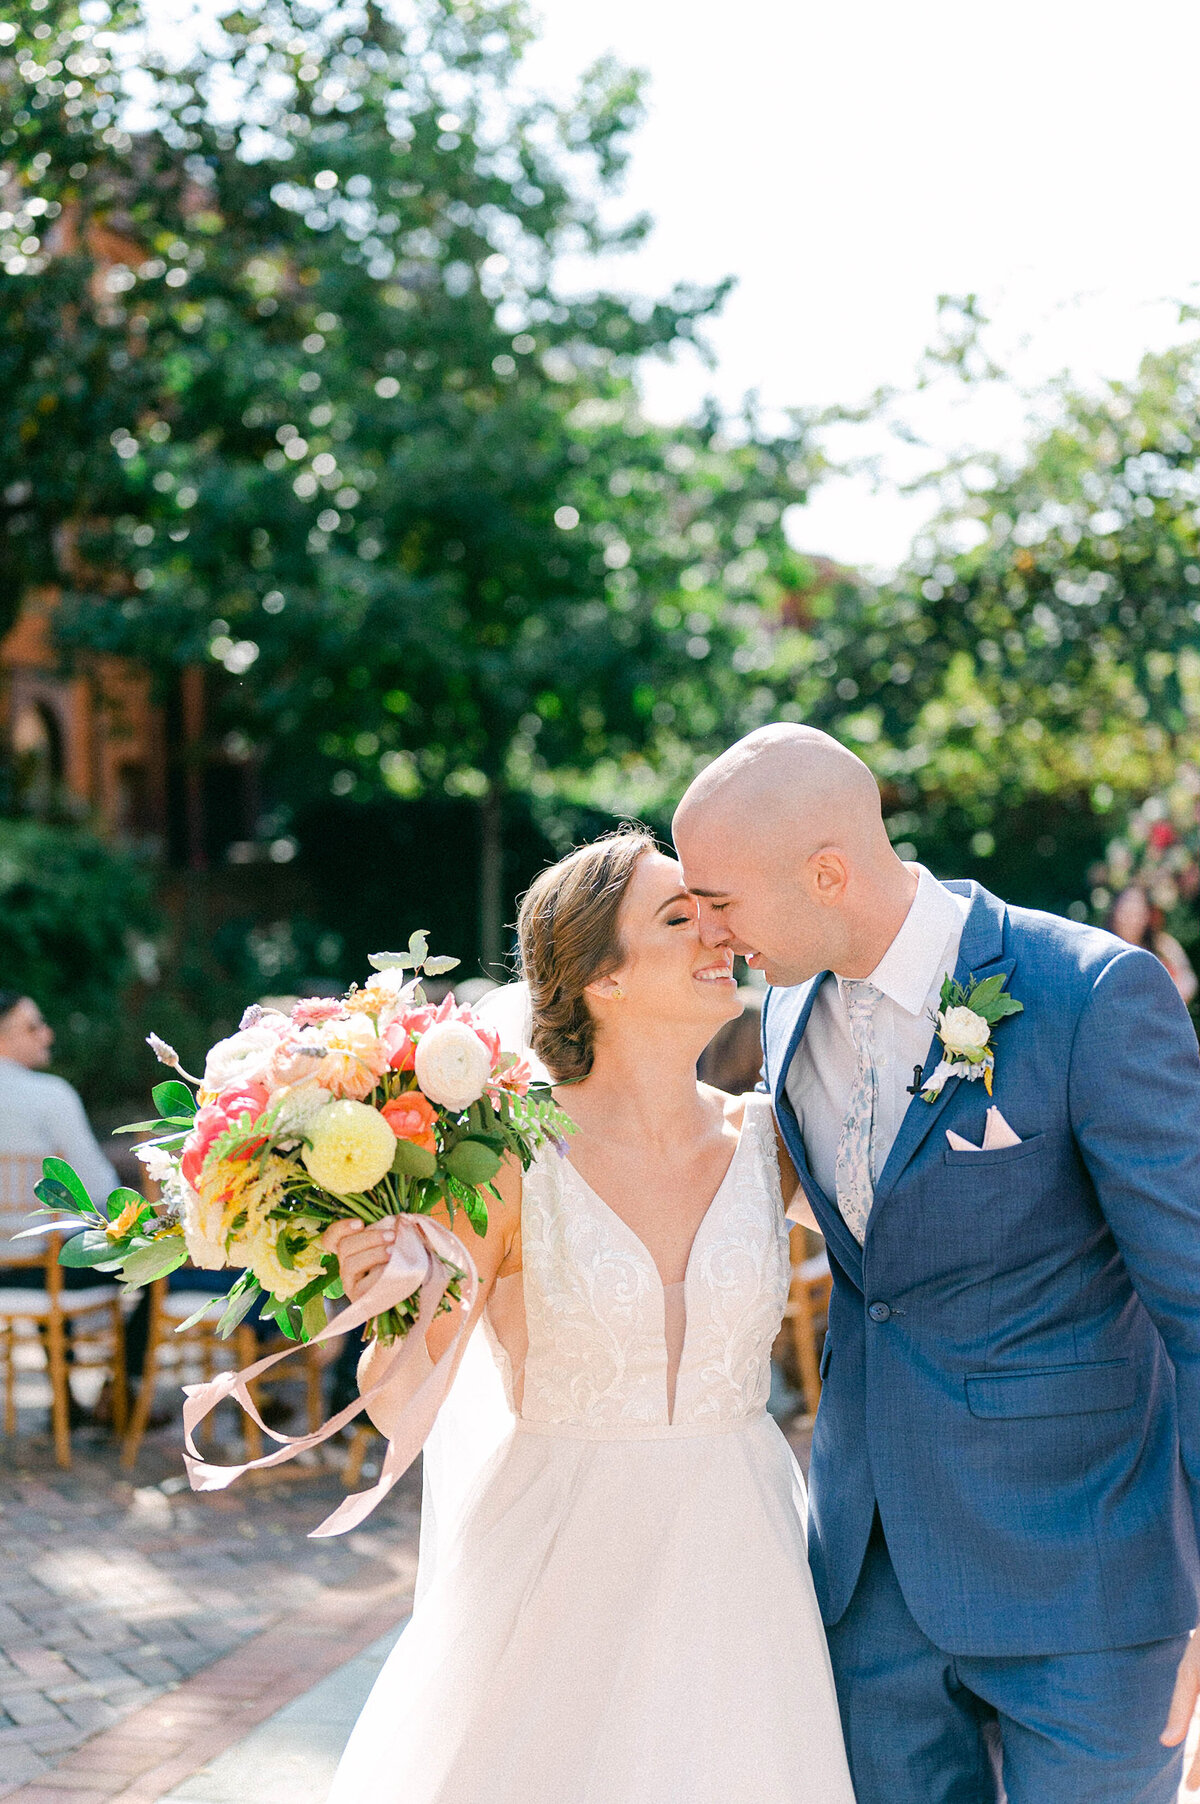 Jennifer Bosak Photography - DC Area Wedding Photography - DC, Virginia, Maryland - Jeanna + Michael - Decatur House Wedding - 30